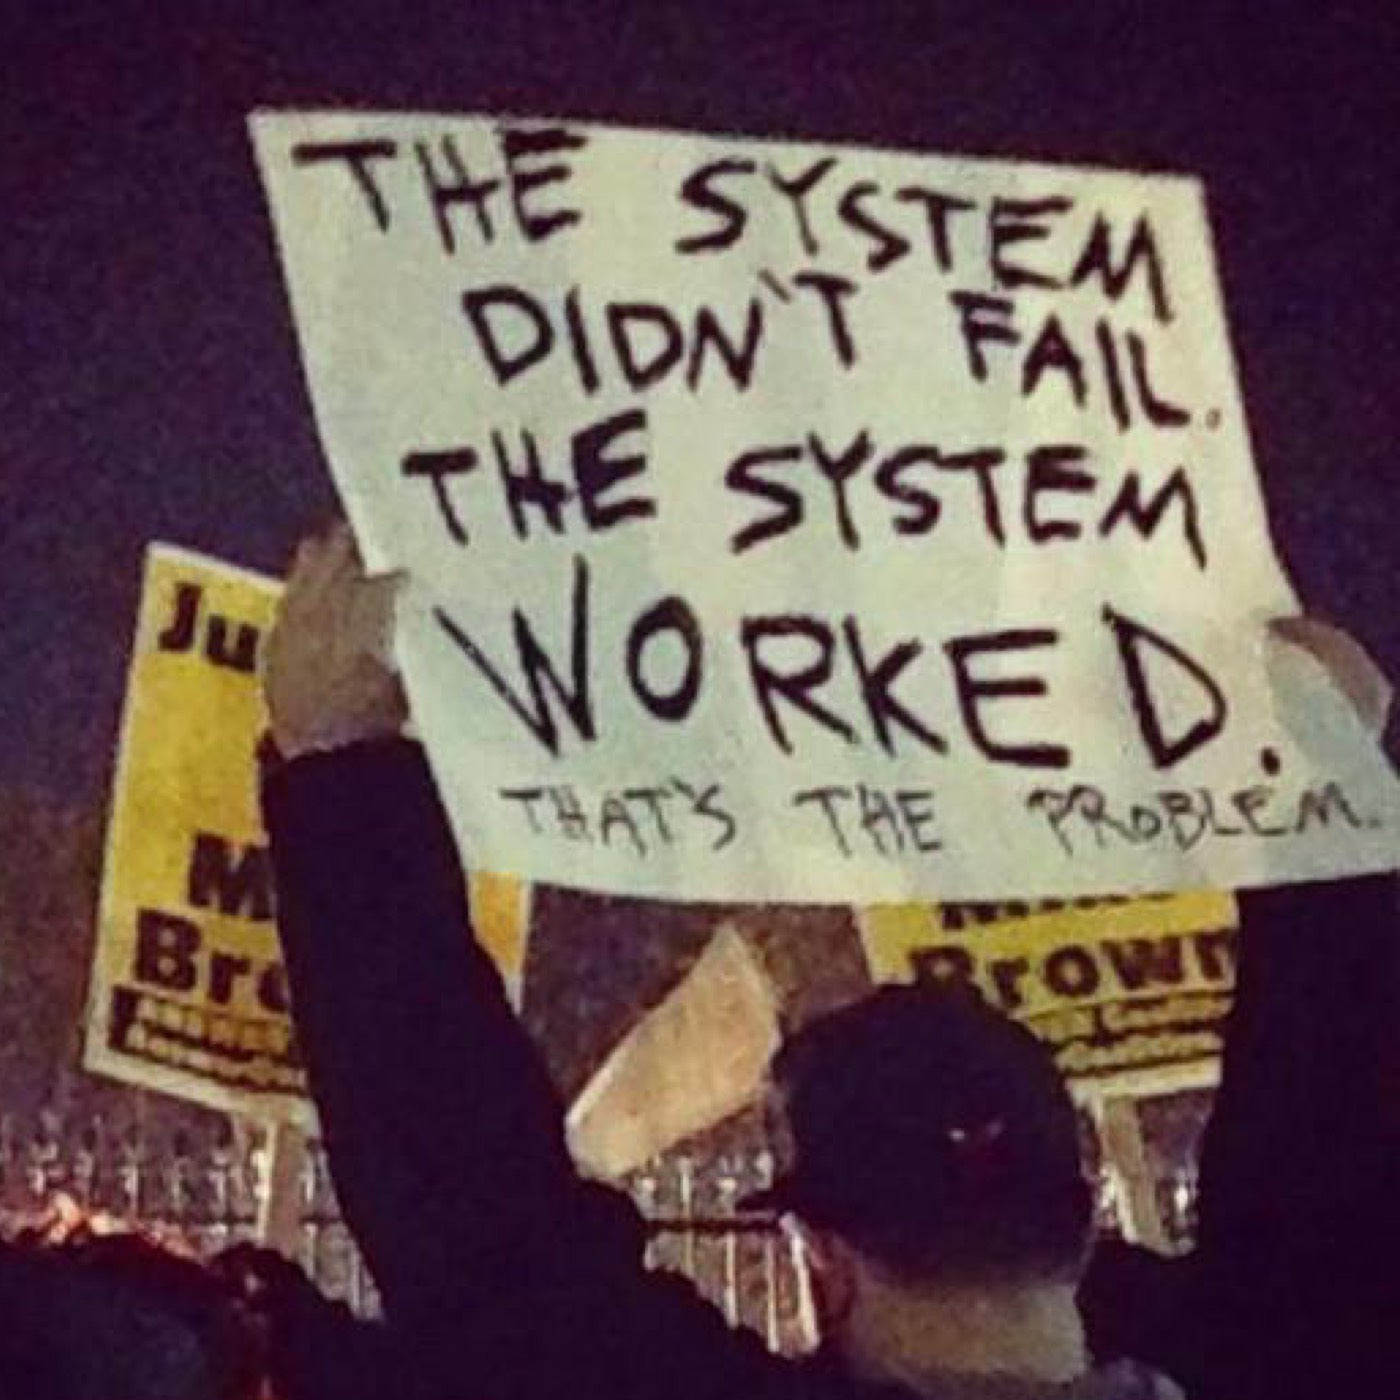 (2015/01/09) The system is built to fail (Injustice System)